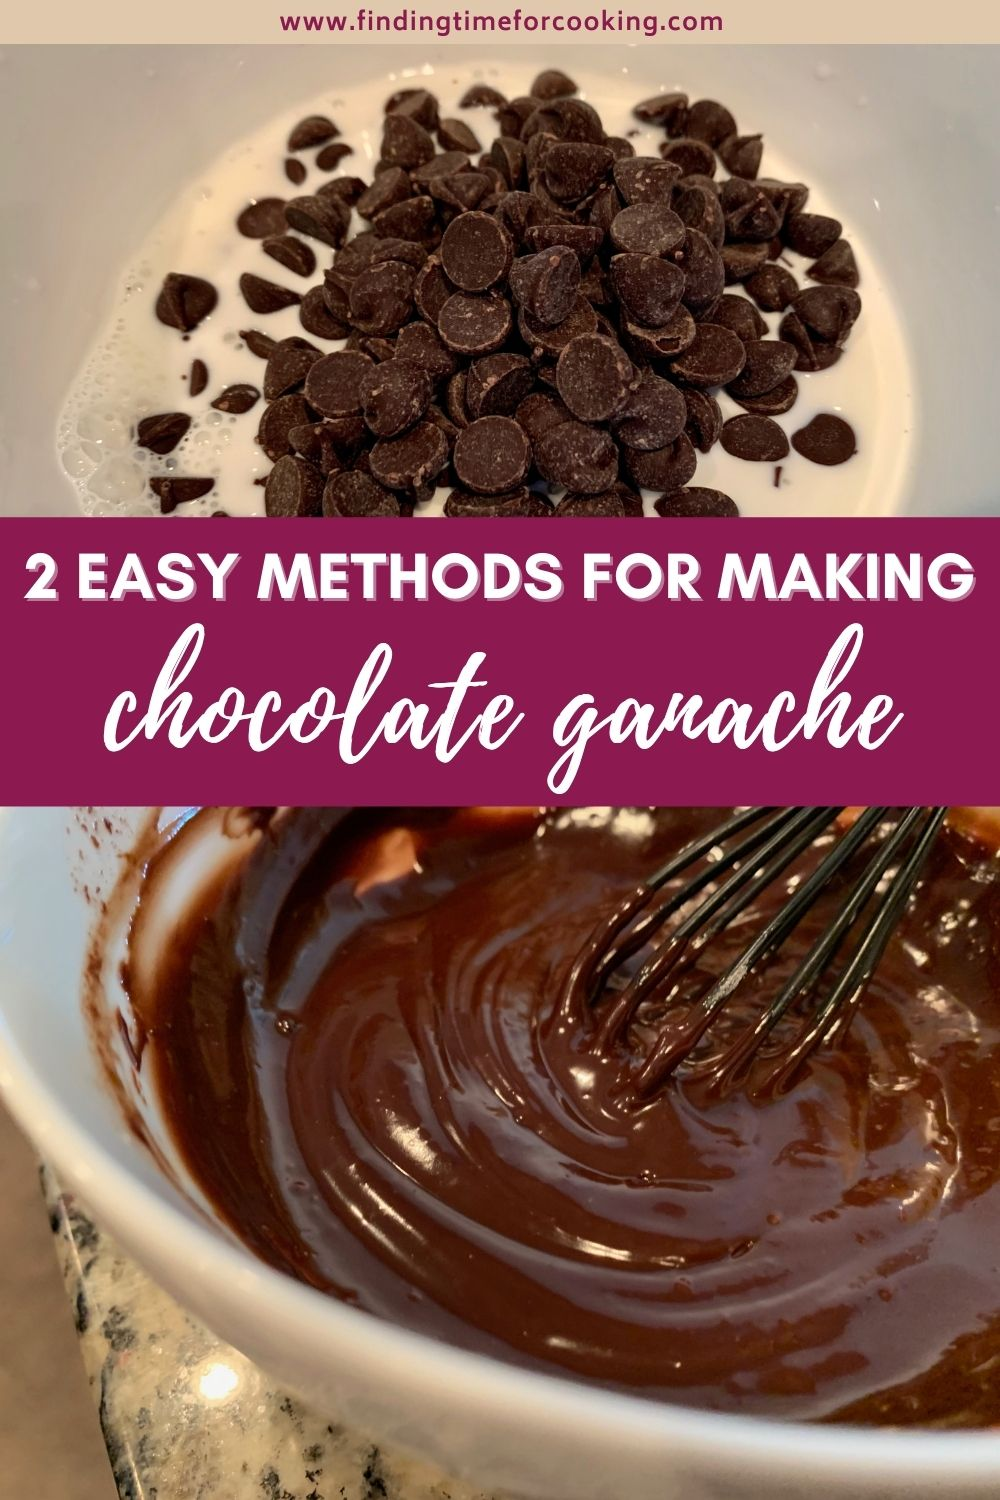 How to Make Ganache...2 easy methods for a delicious pouring dark chocolate ganache (for cakes)   It sounds fancy but is super easy, you can make chocolate ganache with just a couple ingredients and a few minutes. I show you two different easy methods. #ganache #darkchocolate #bakingtips